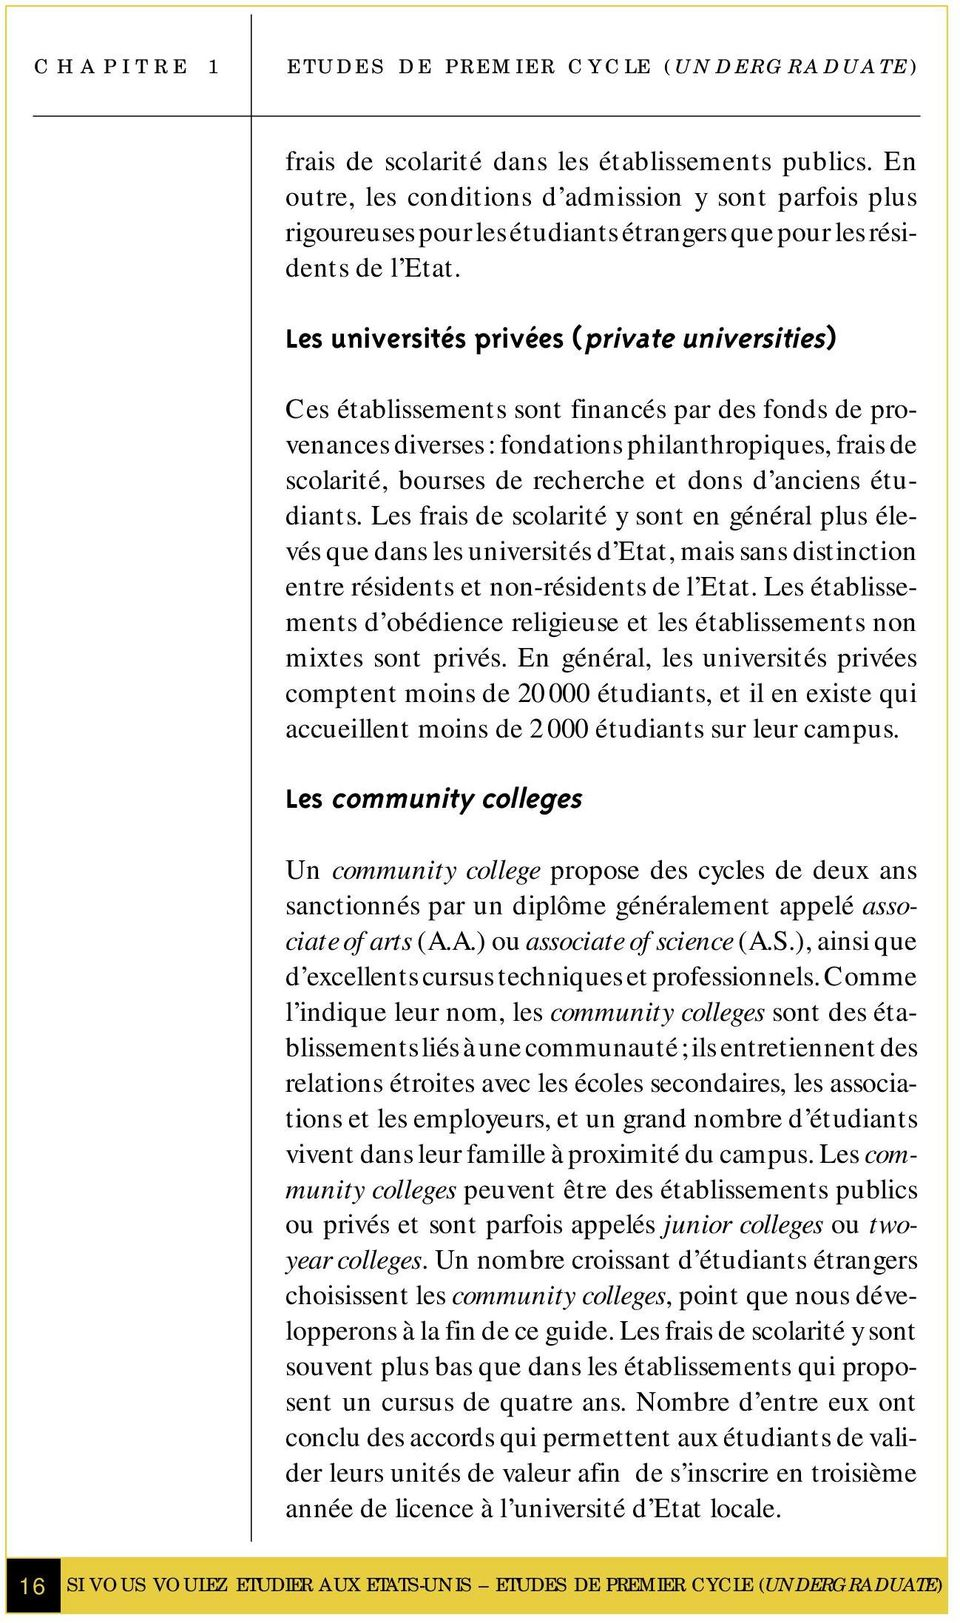 Les universités privées (private universities) Ces établissements sont financés par des fonds de provenances diverses : fondations philanthropiques, frais de scolarité, bourses de recherche et dons d